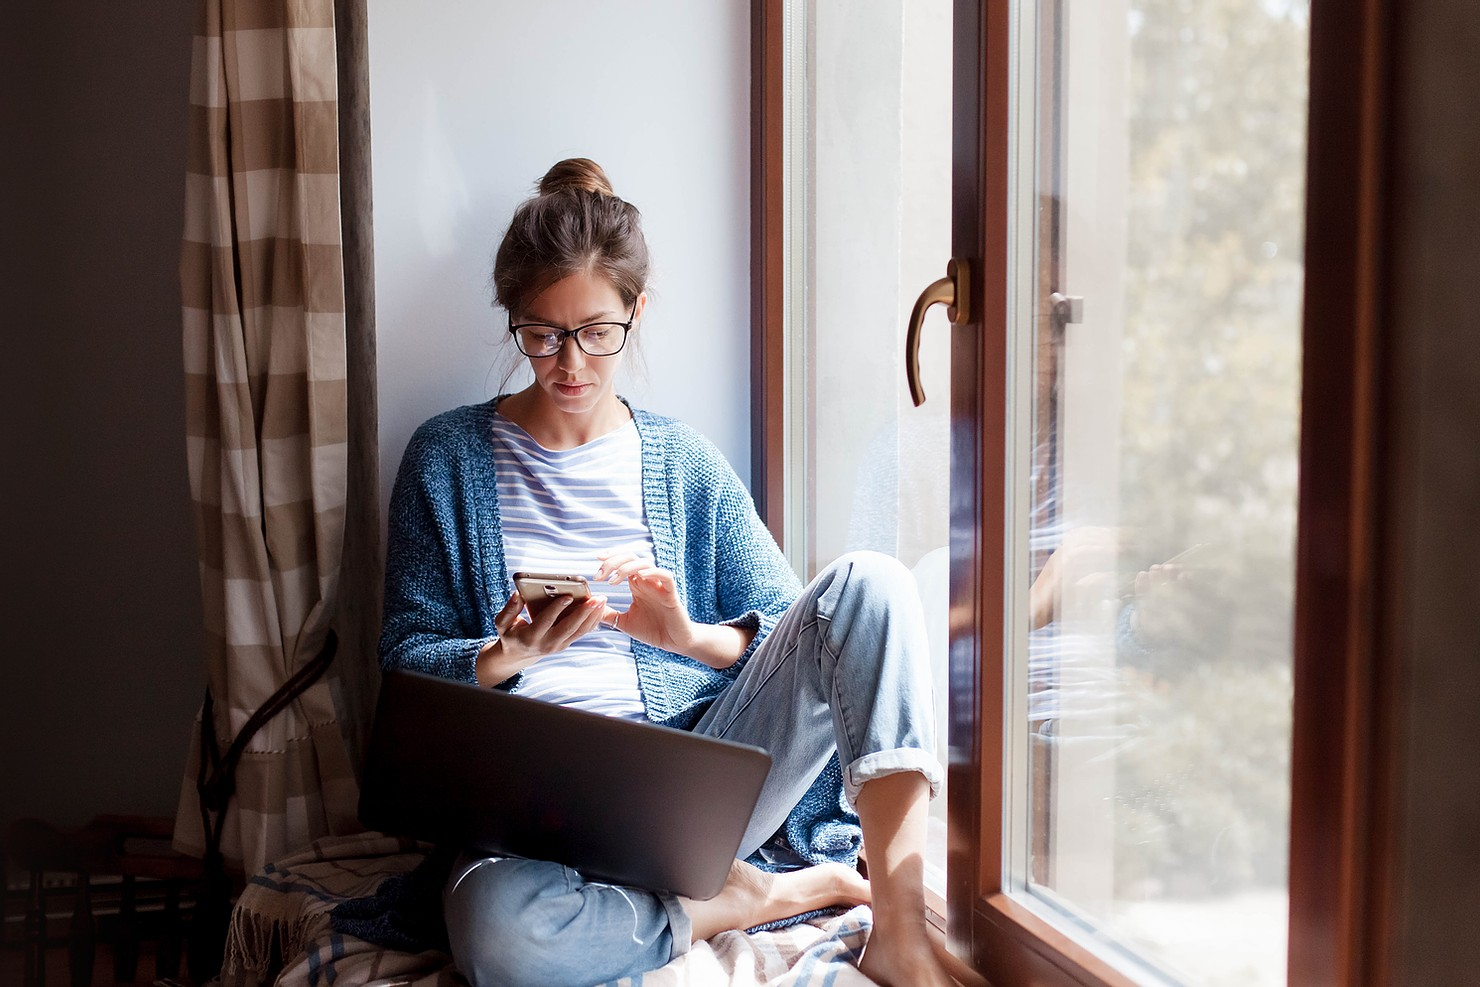 So you're working from home. Now what?